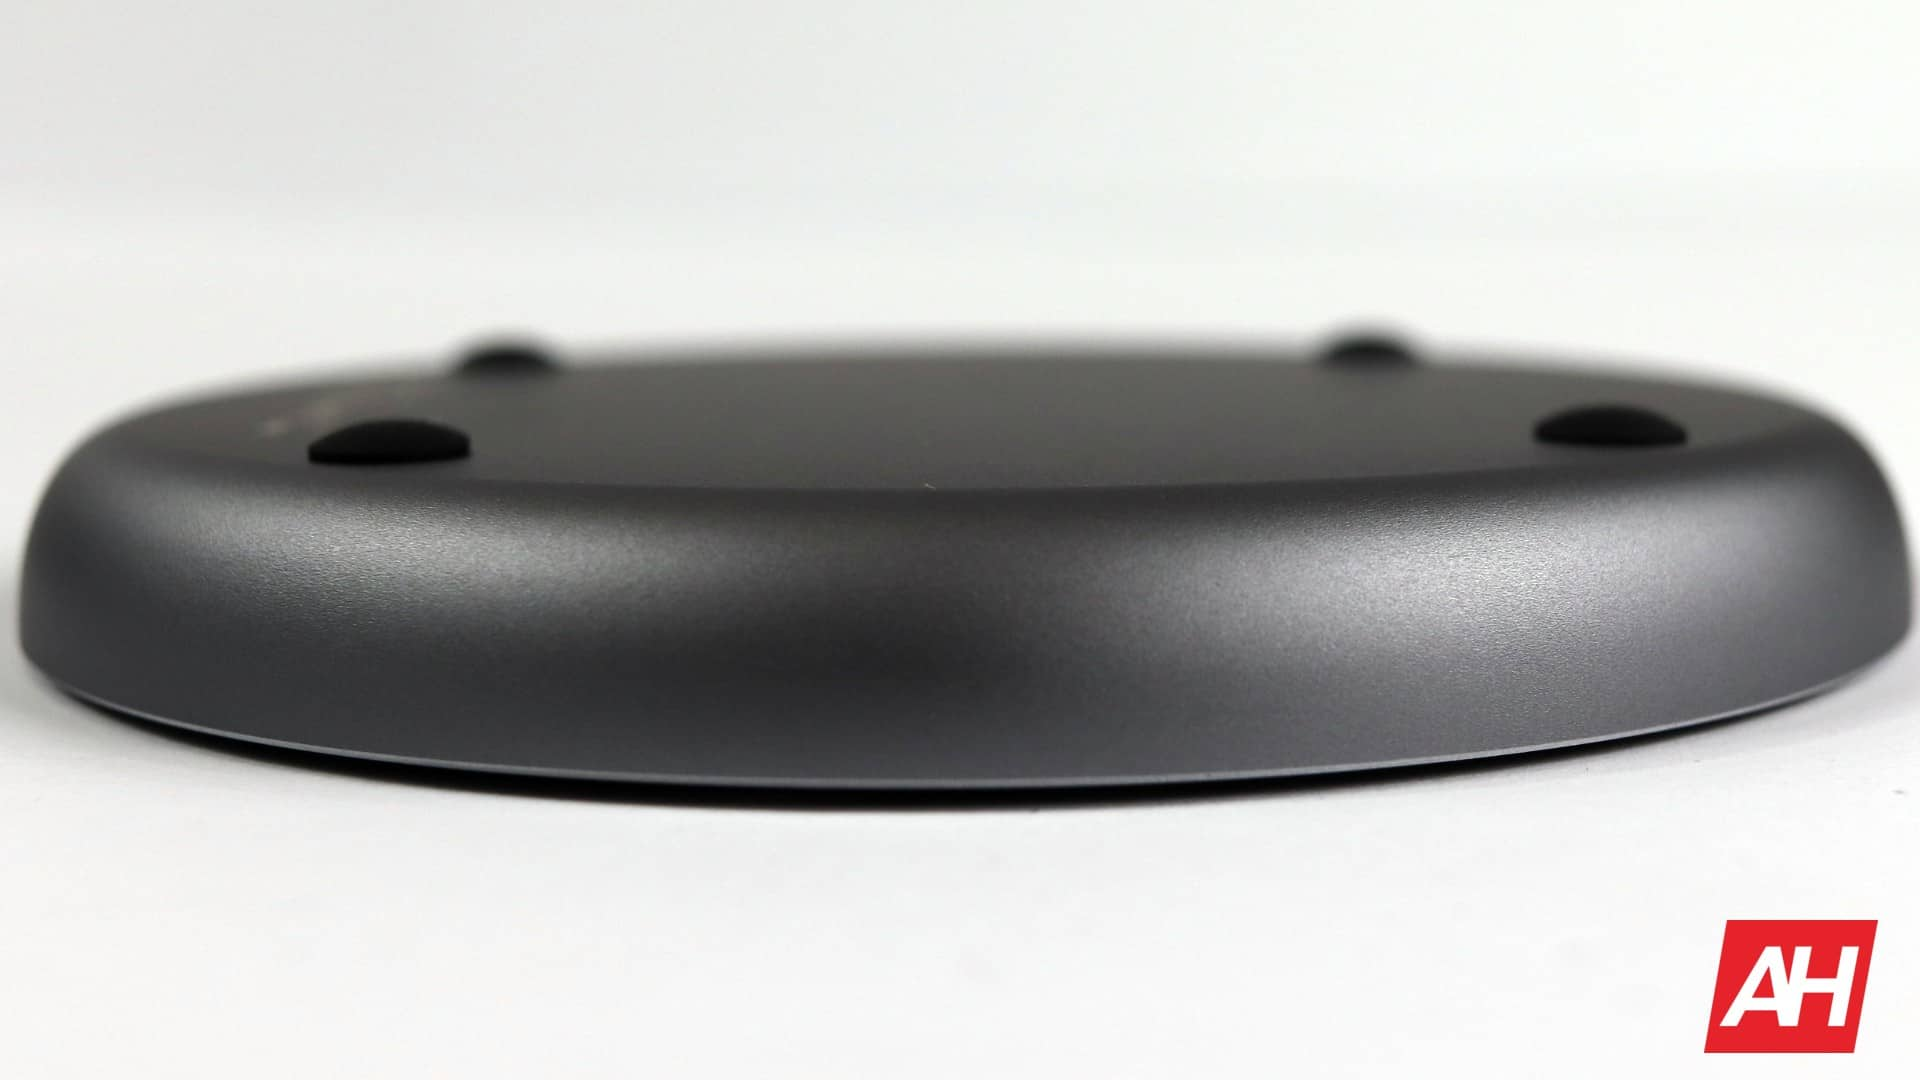 Satechi Wireless Charger V2 Review 08 AH